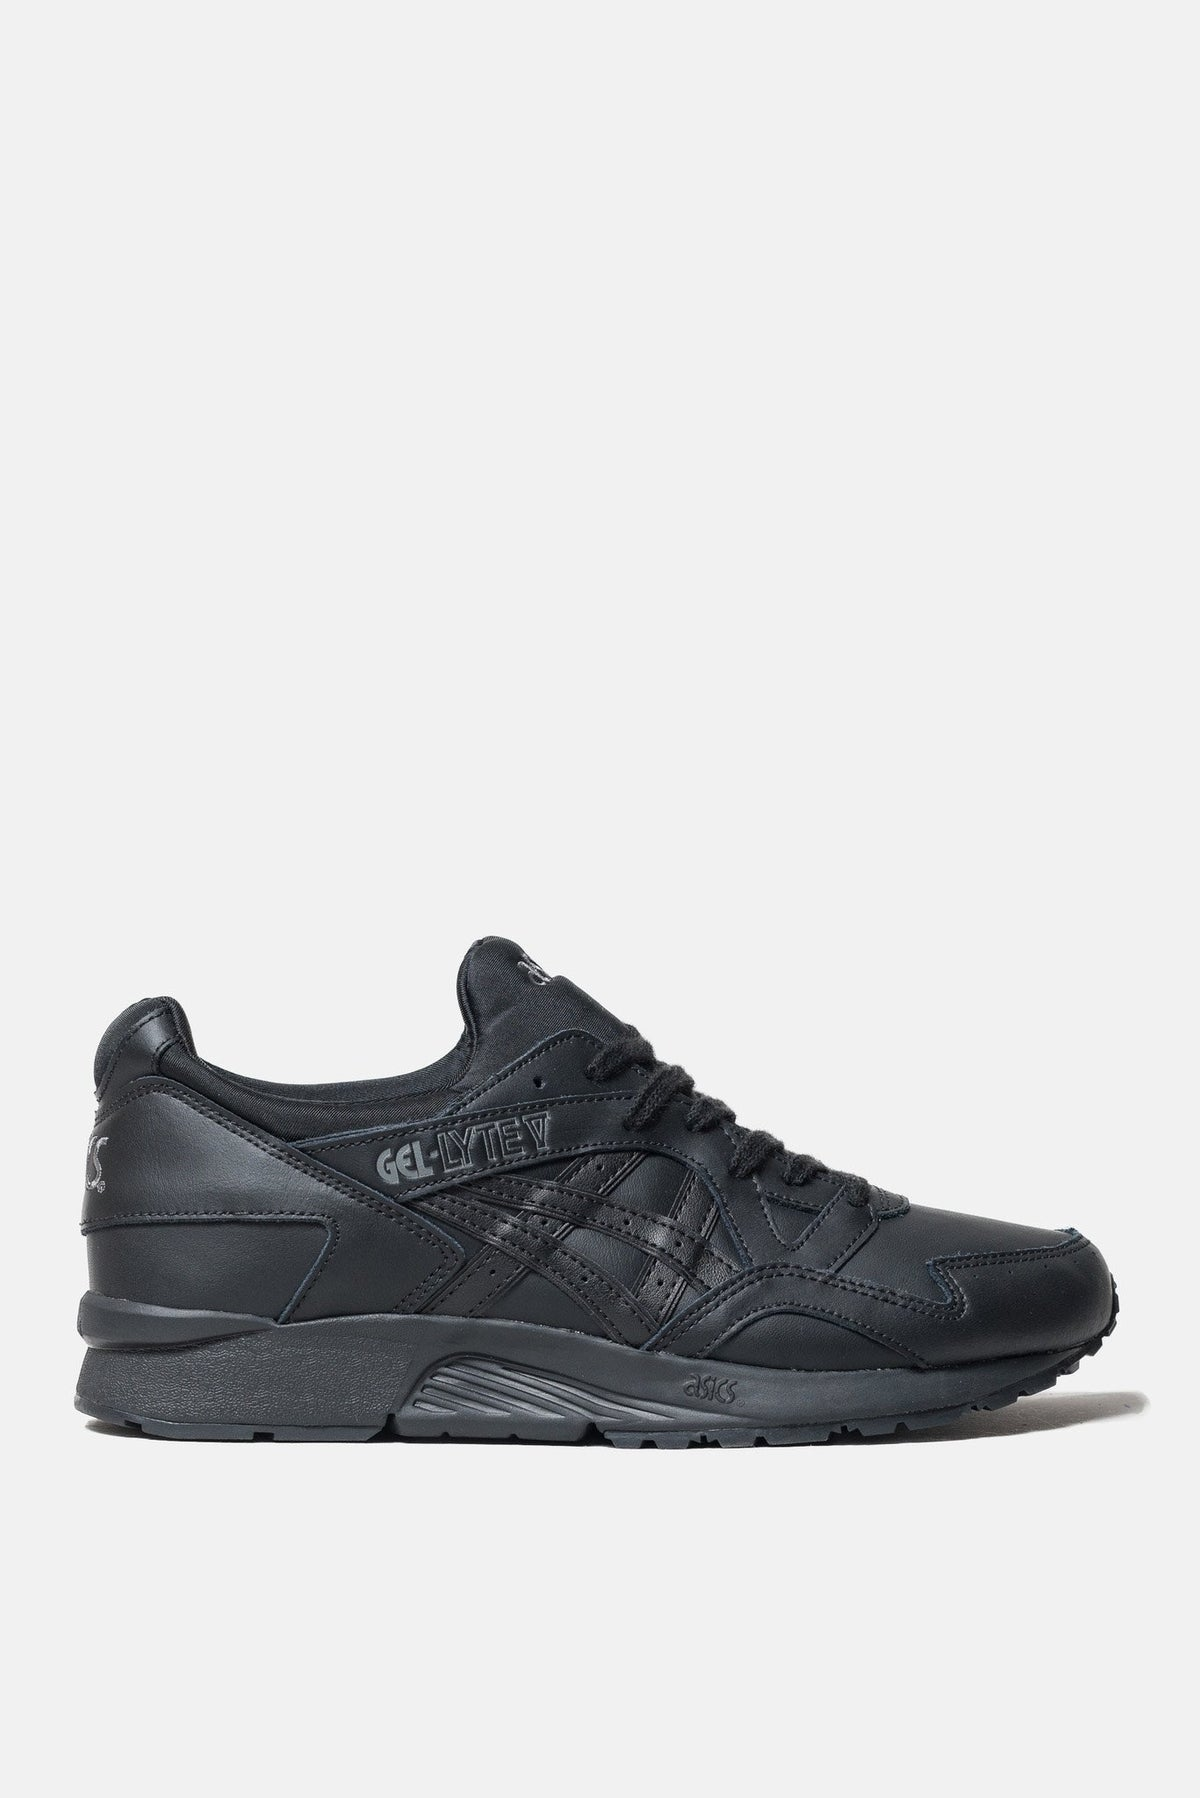 e2d8b169ae20 Asics Gel Lyte V Shoes available from Priory